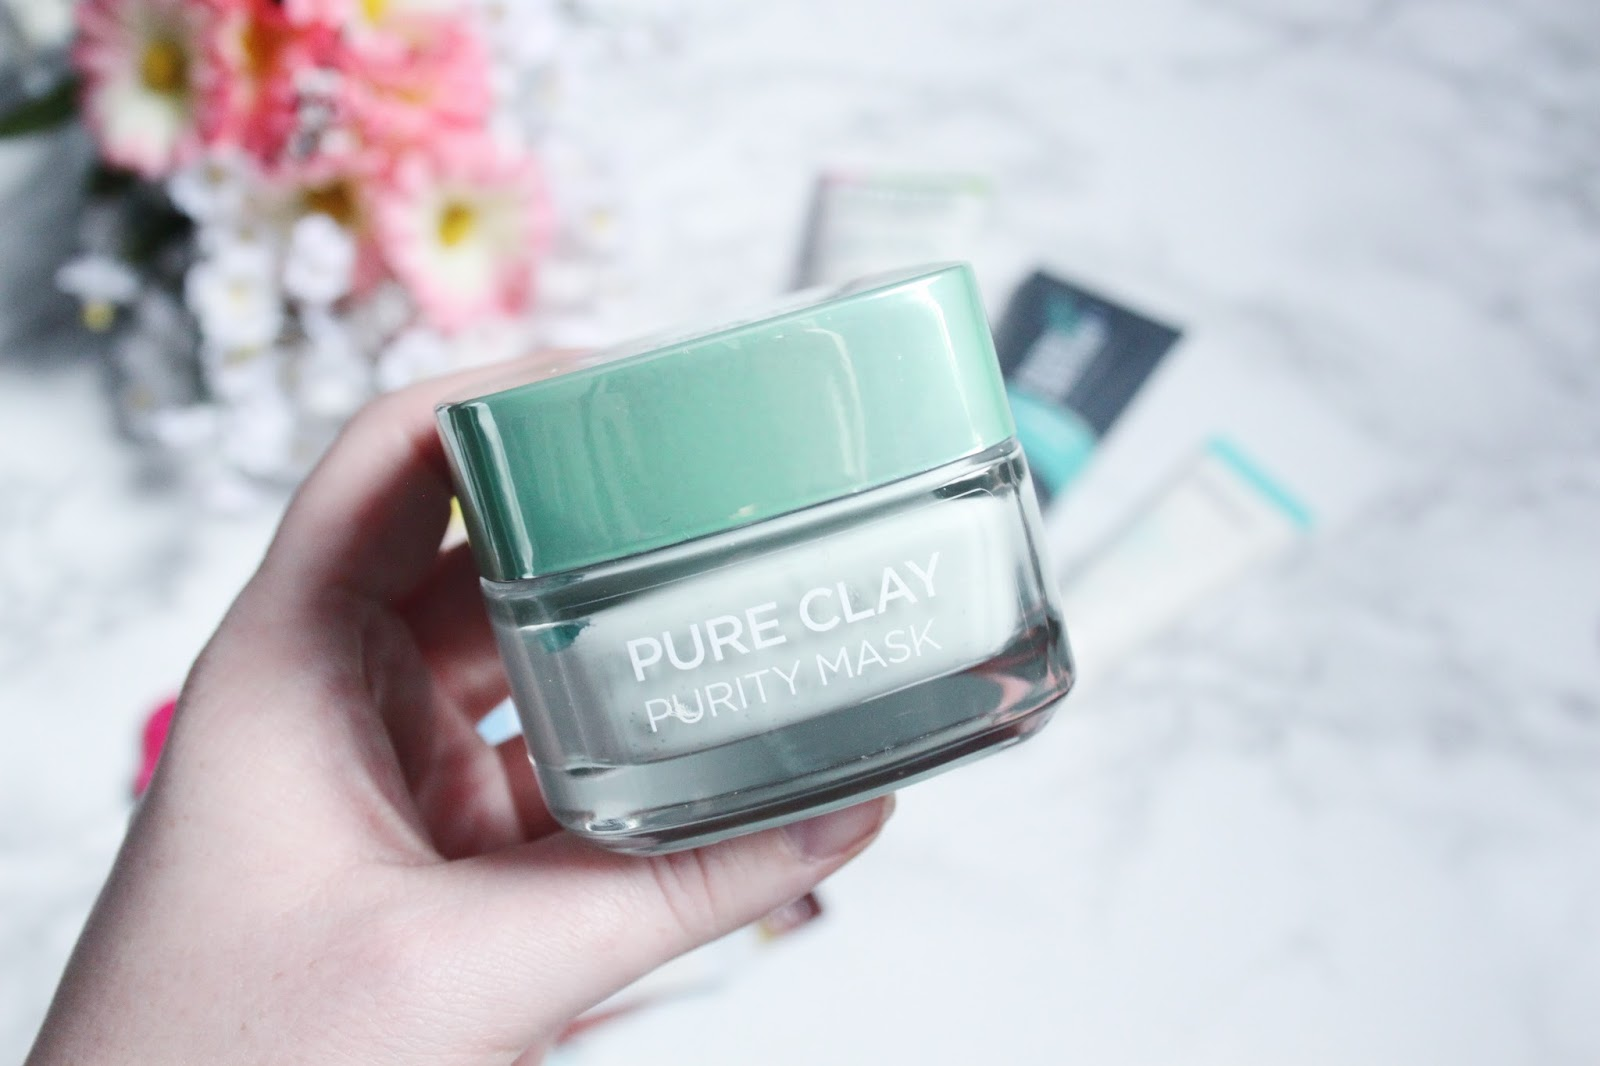 Loreal Pure Clay Purity Mask